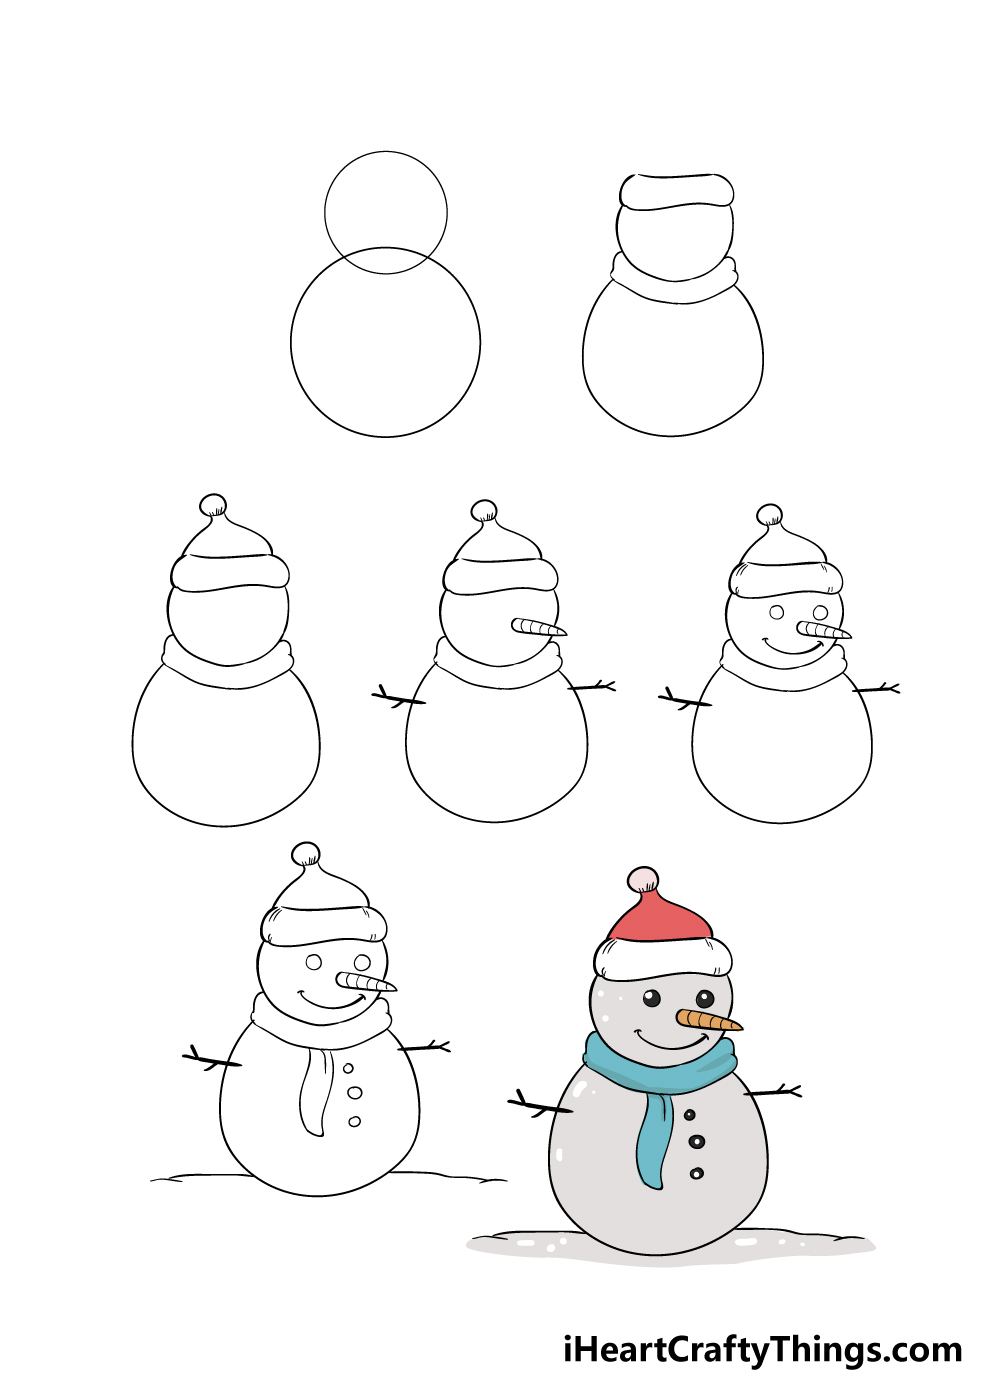 how to draw snowman in 7 steps